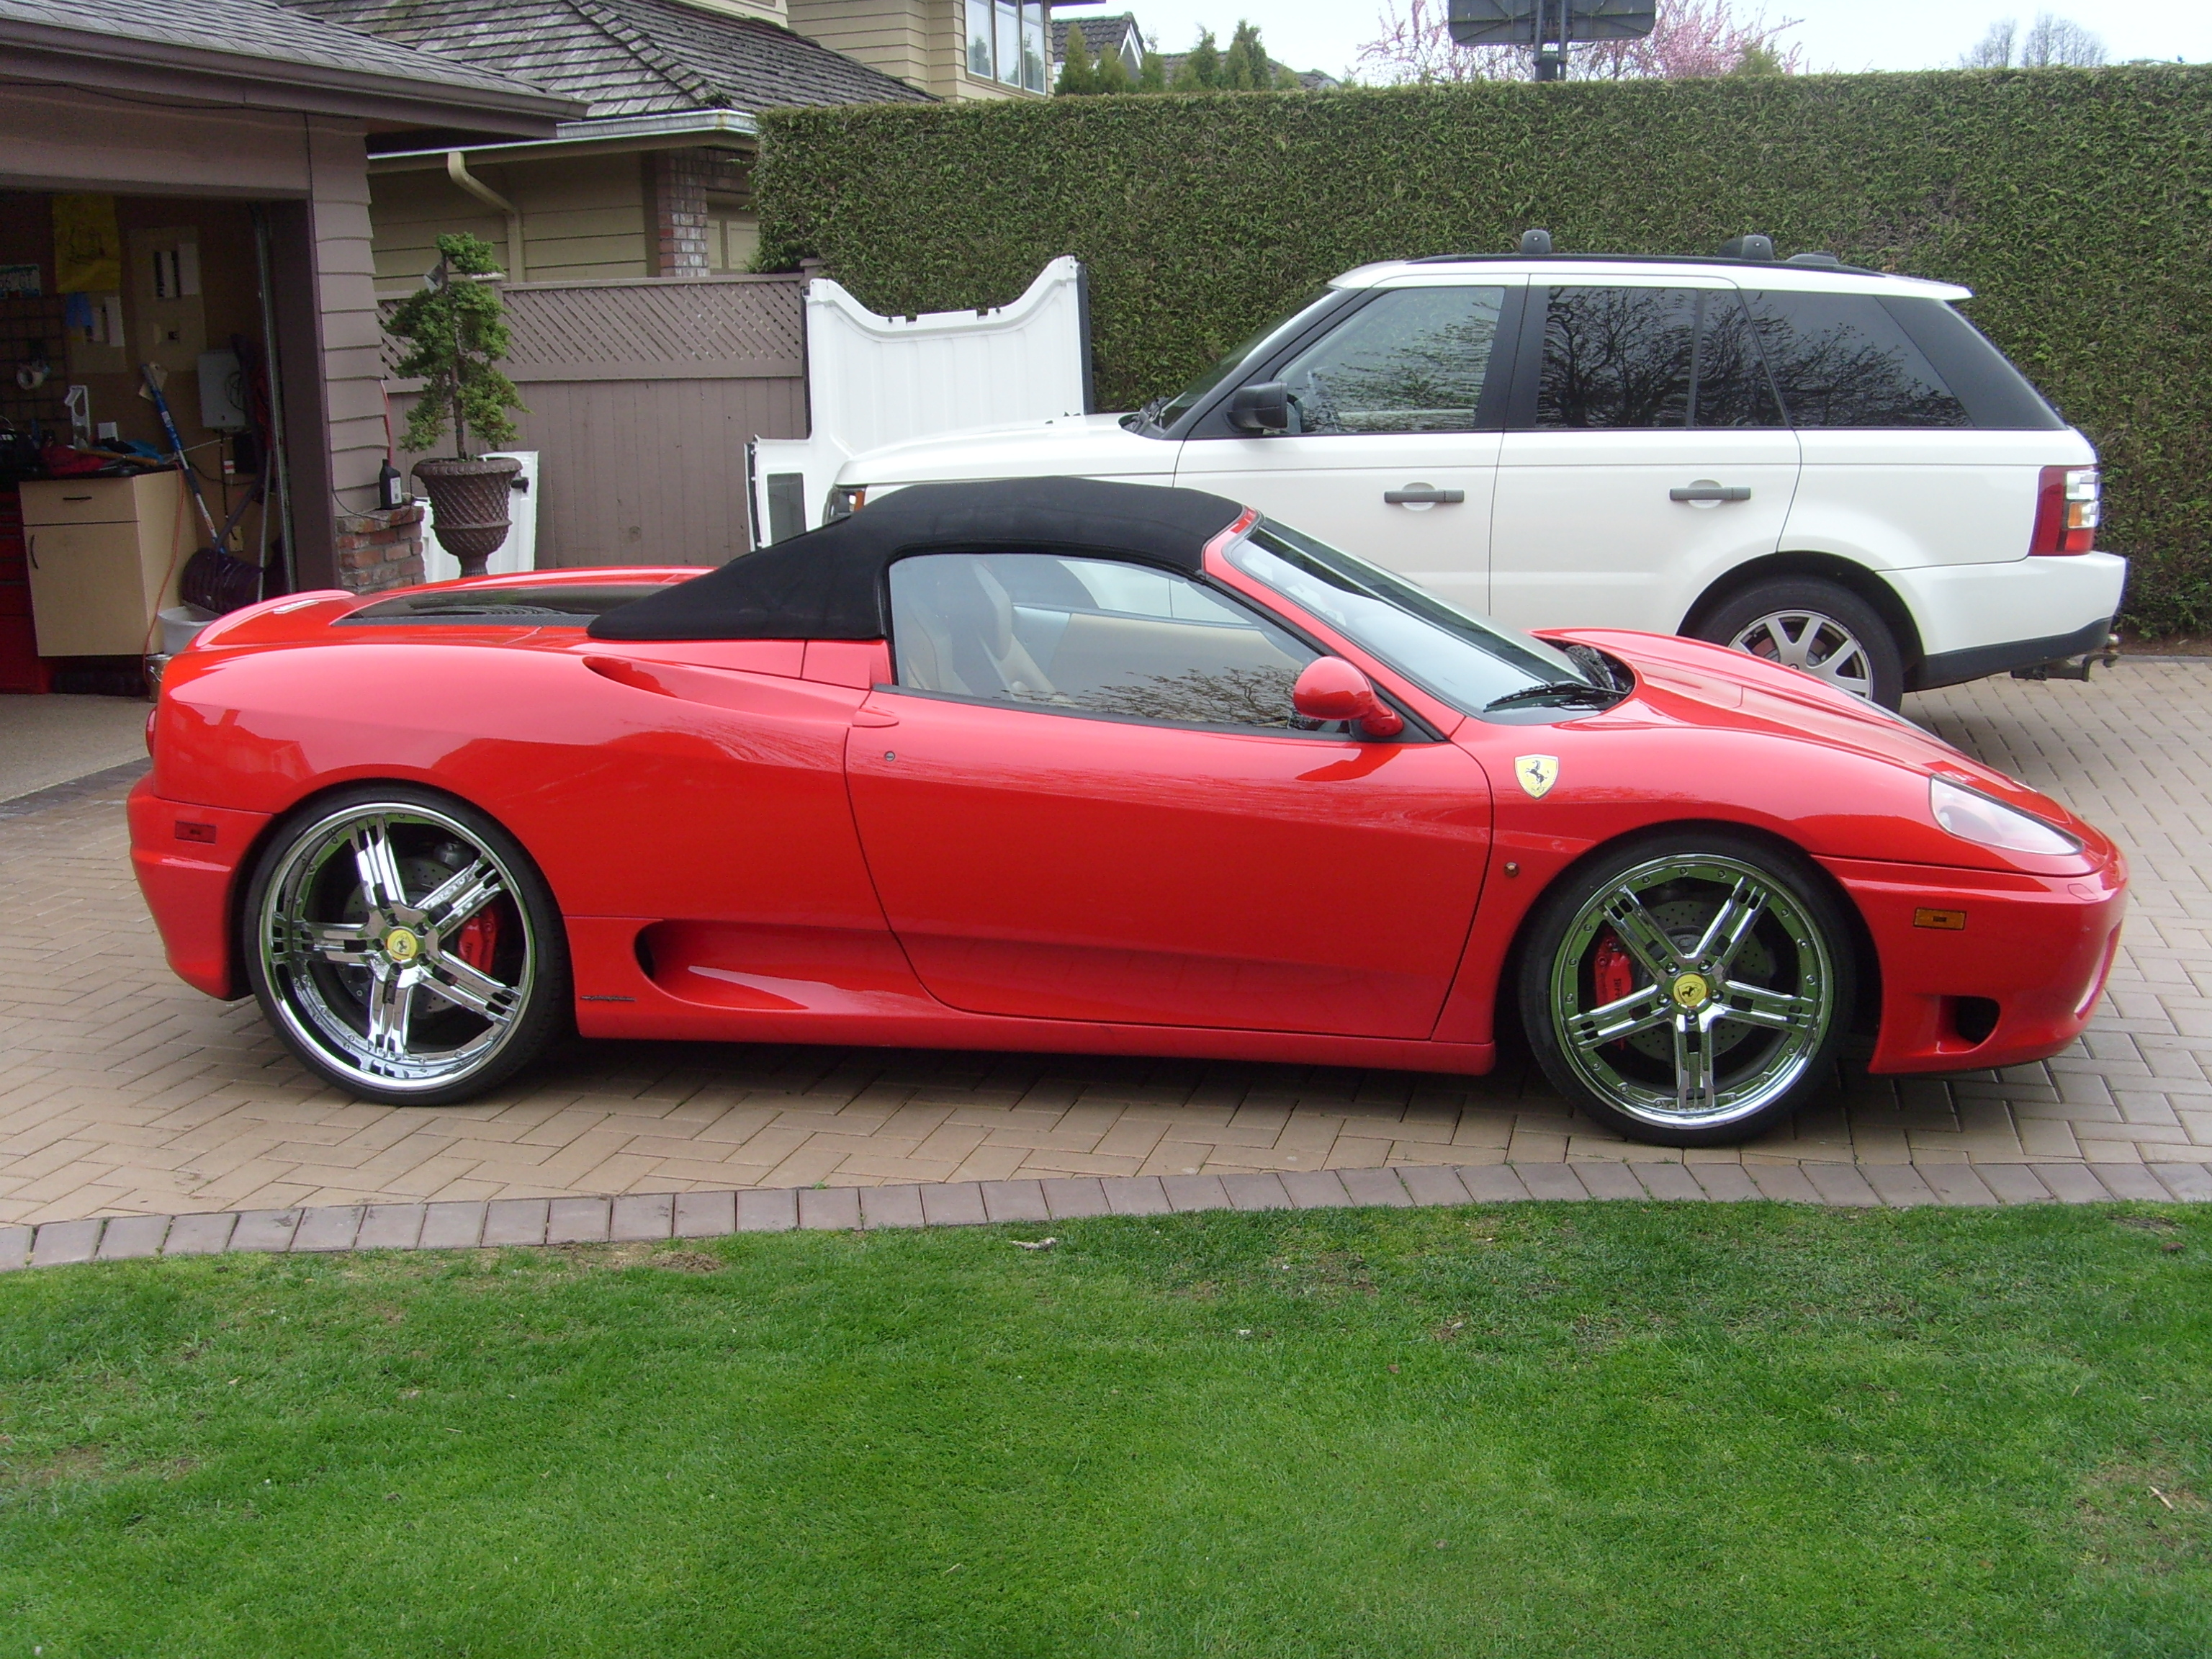 convertible marbella on jamesedition red gt sale spain kms in bentley for cars gtc continental